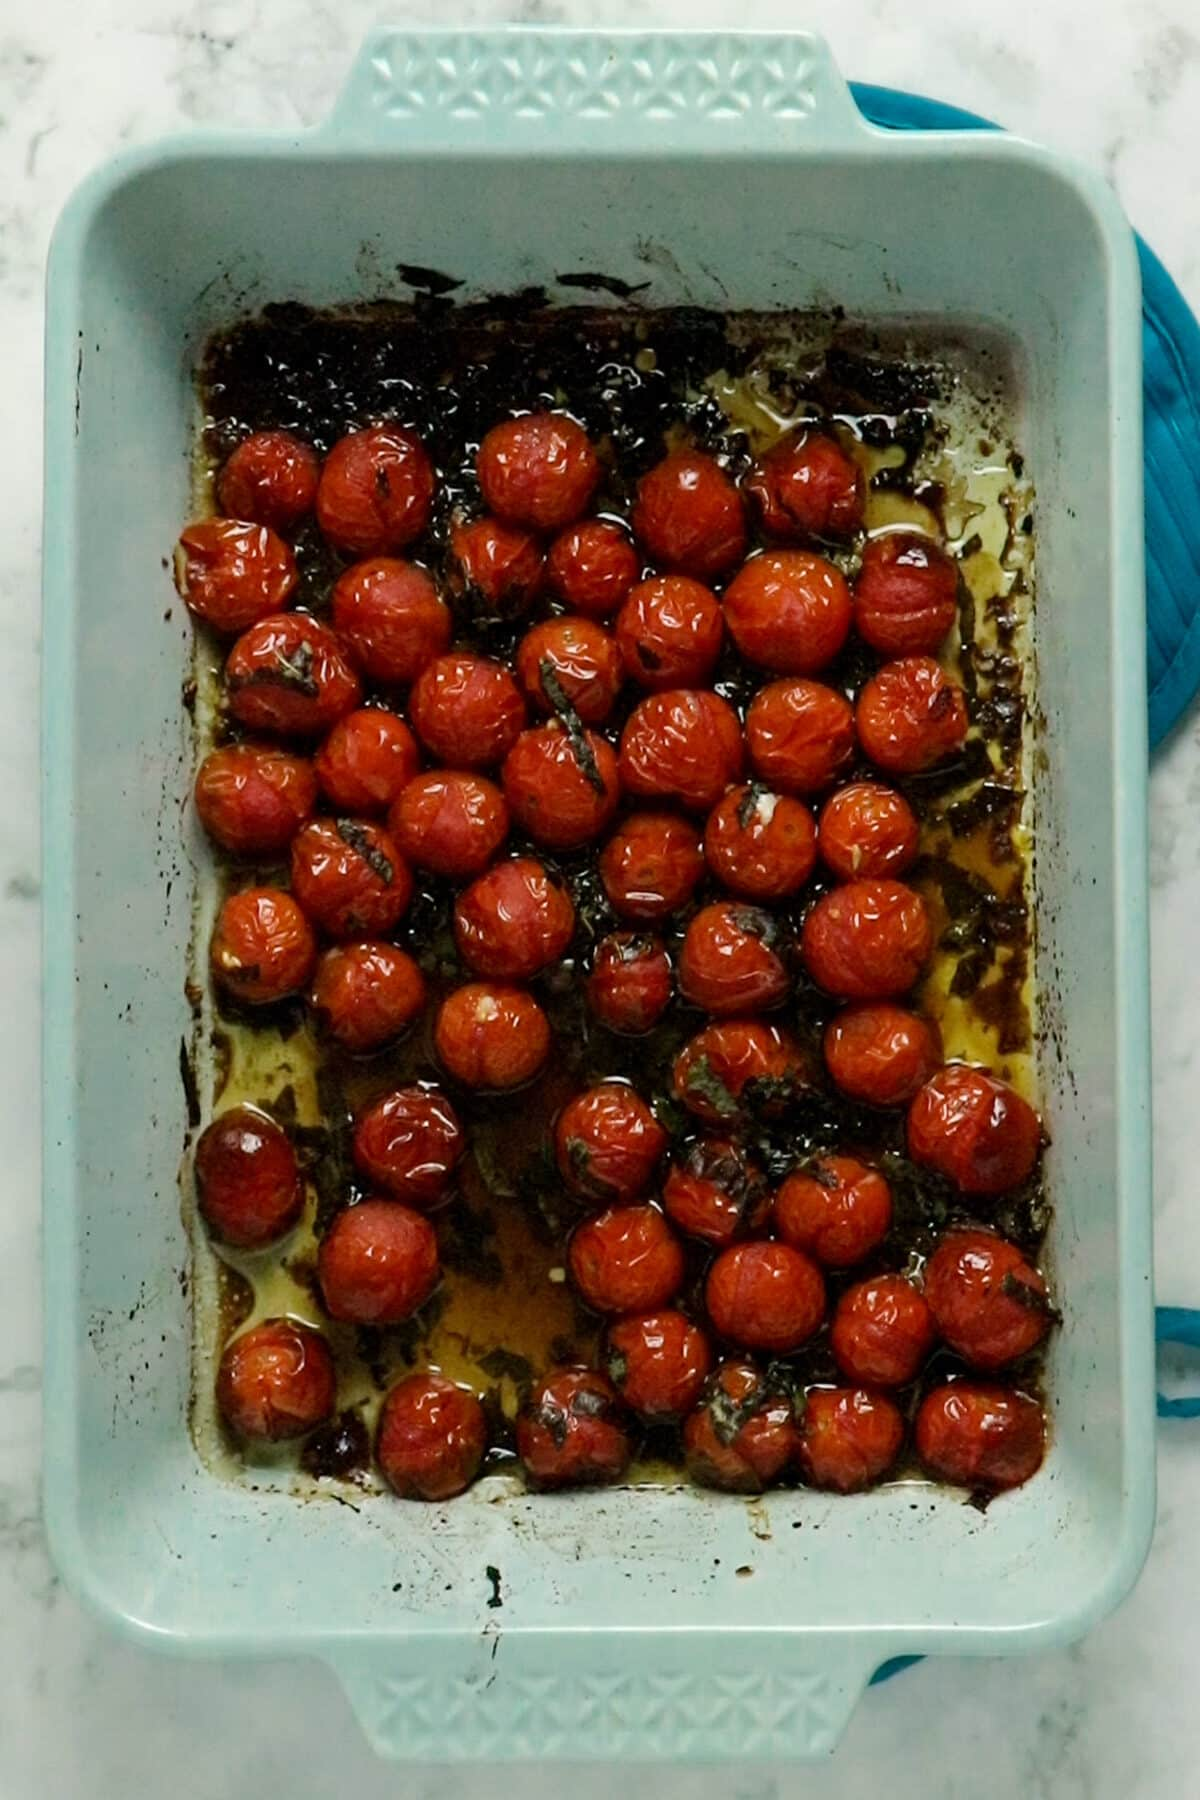 overhead photo of roasted cherry tomatoes in a light blue baking pan